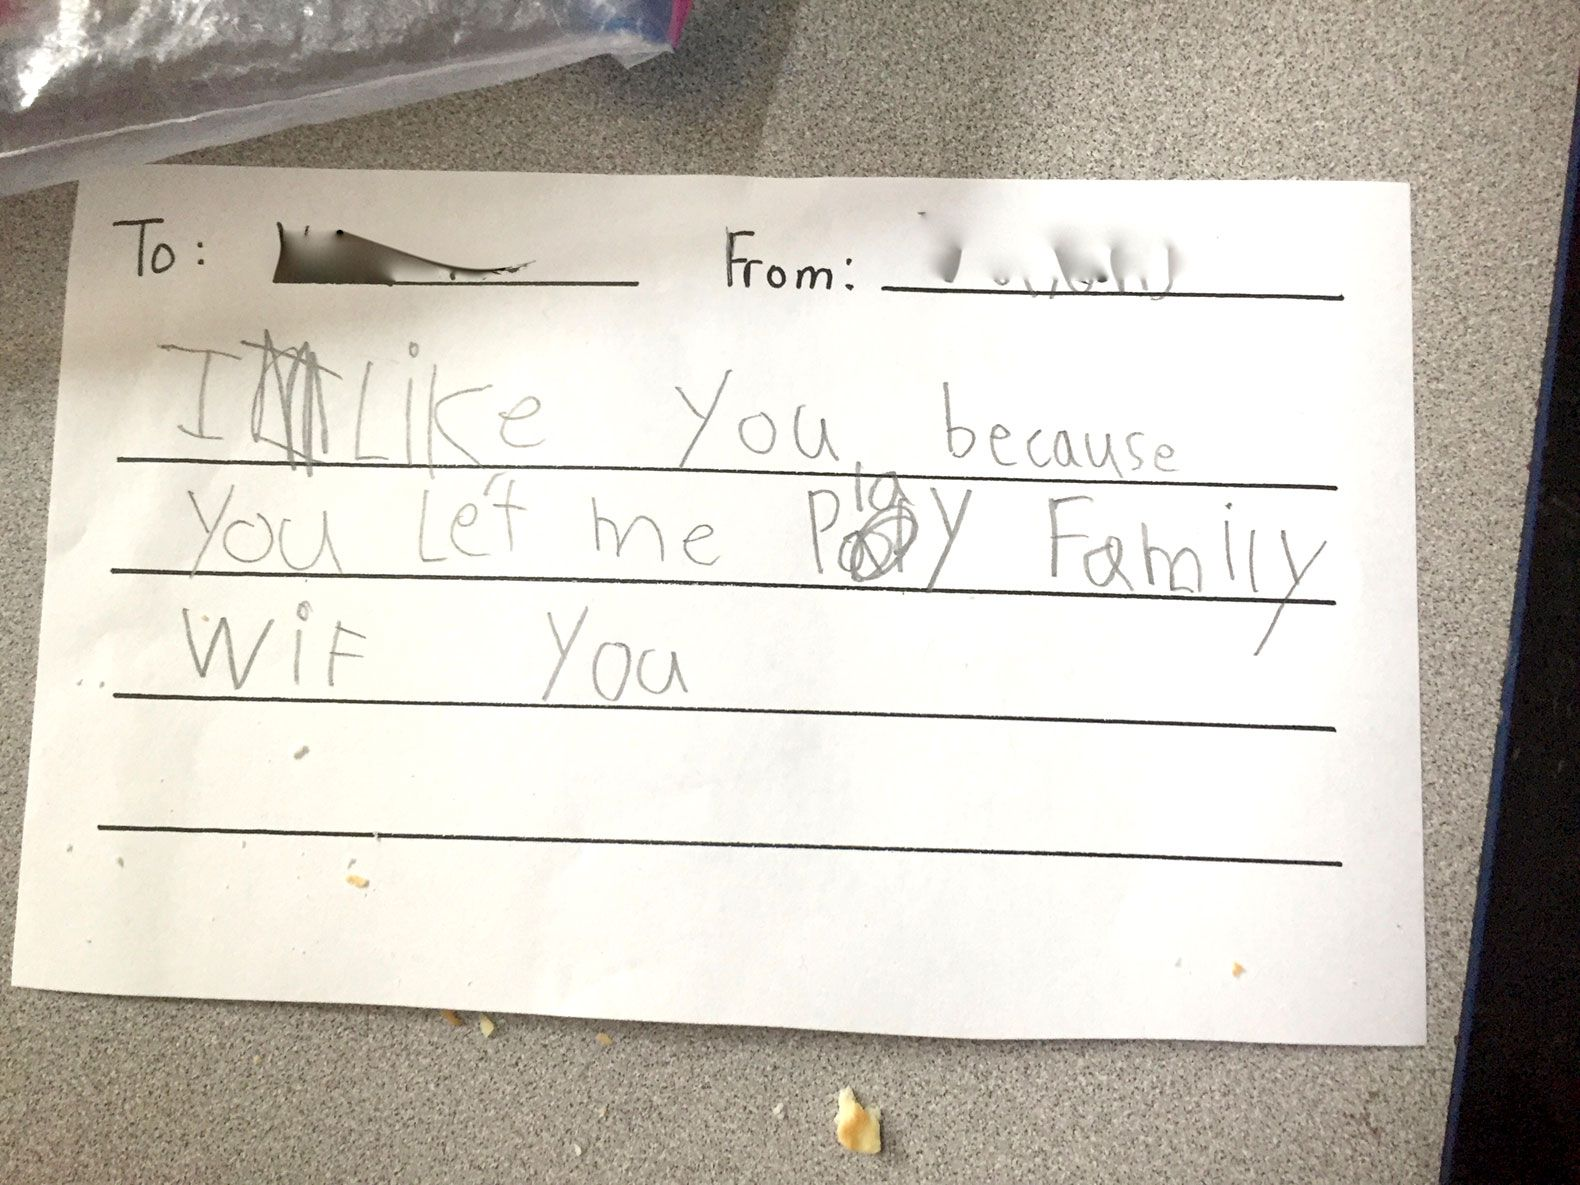 A snack note that one of Kerry Elson's students wrote to a classmate